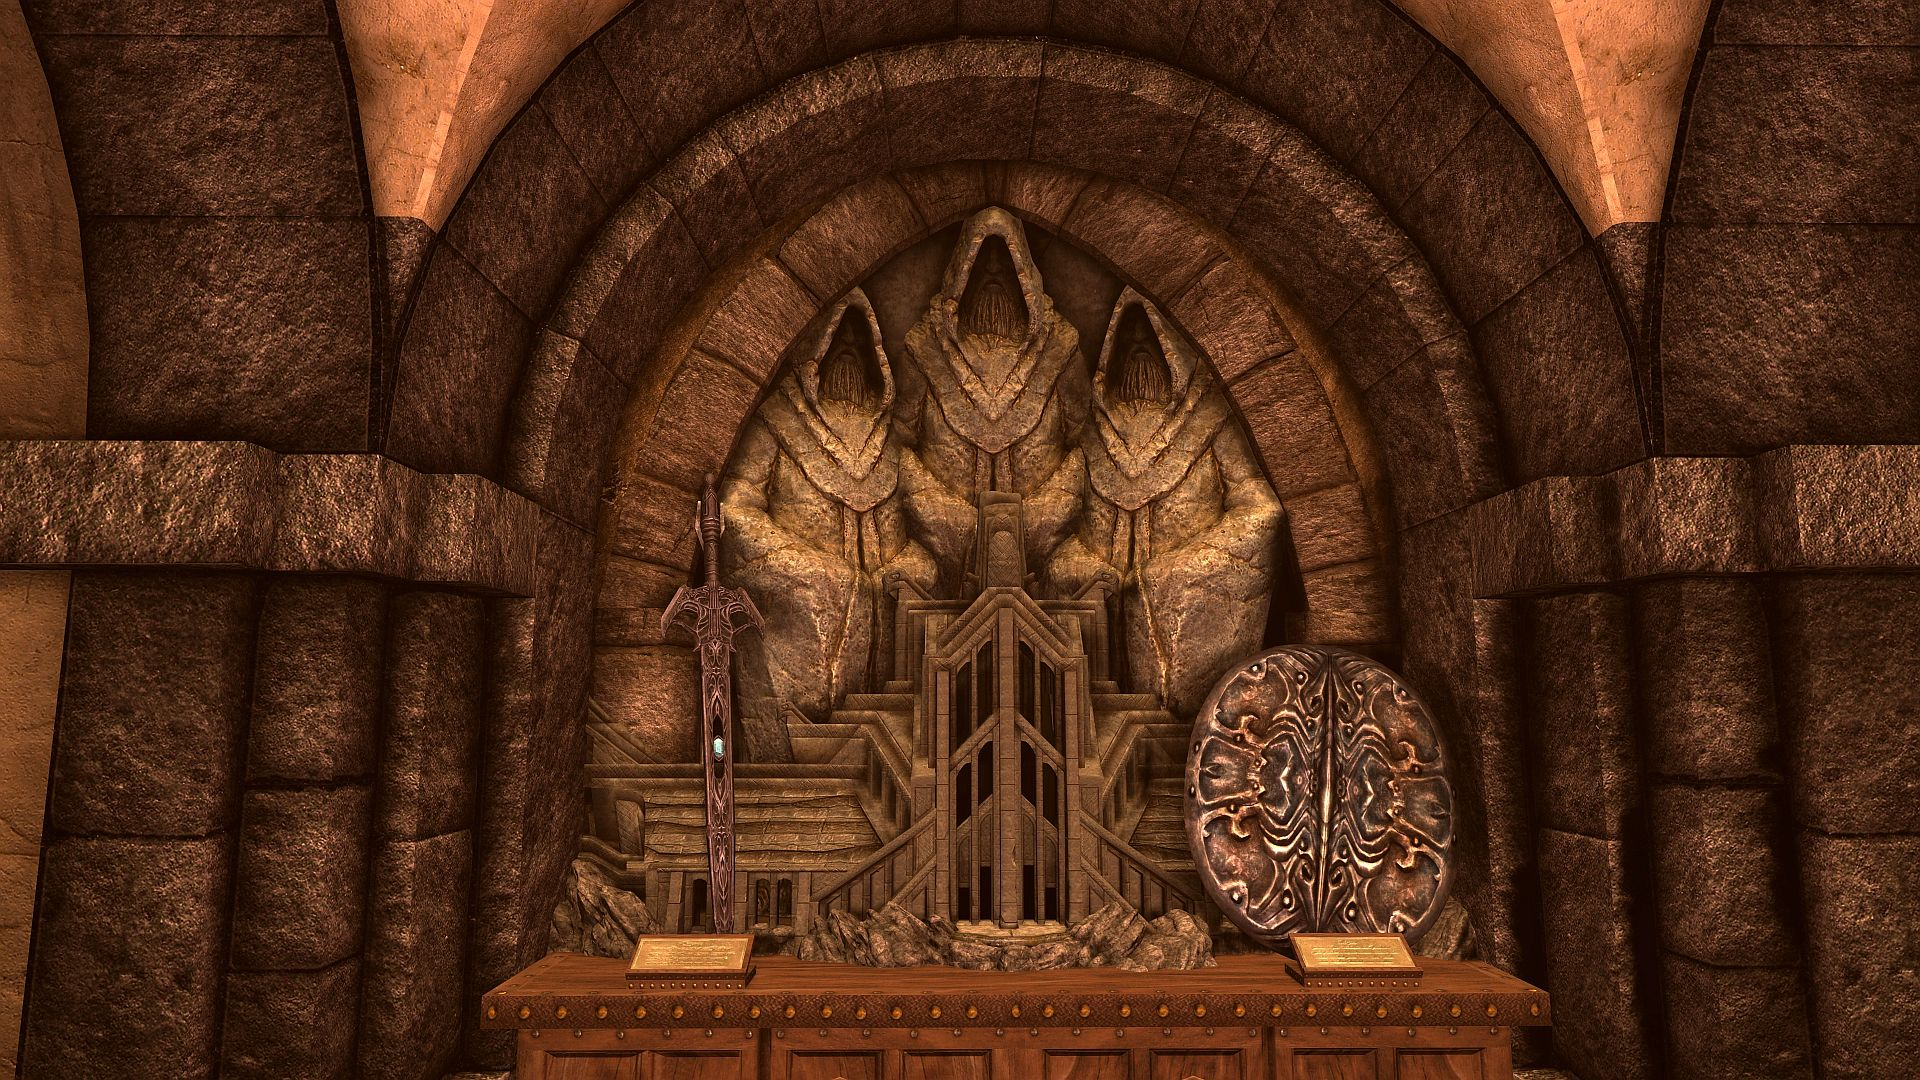 This Skyrim mod adds new dungeons, a museum, and hundreds of artefacts